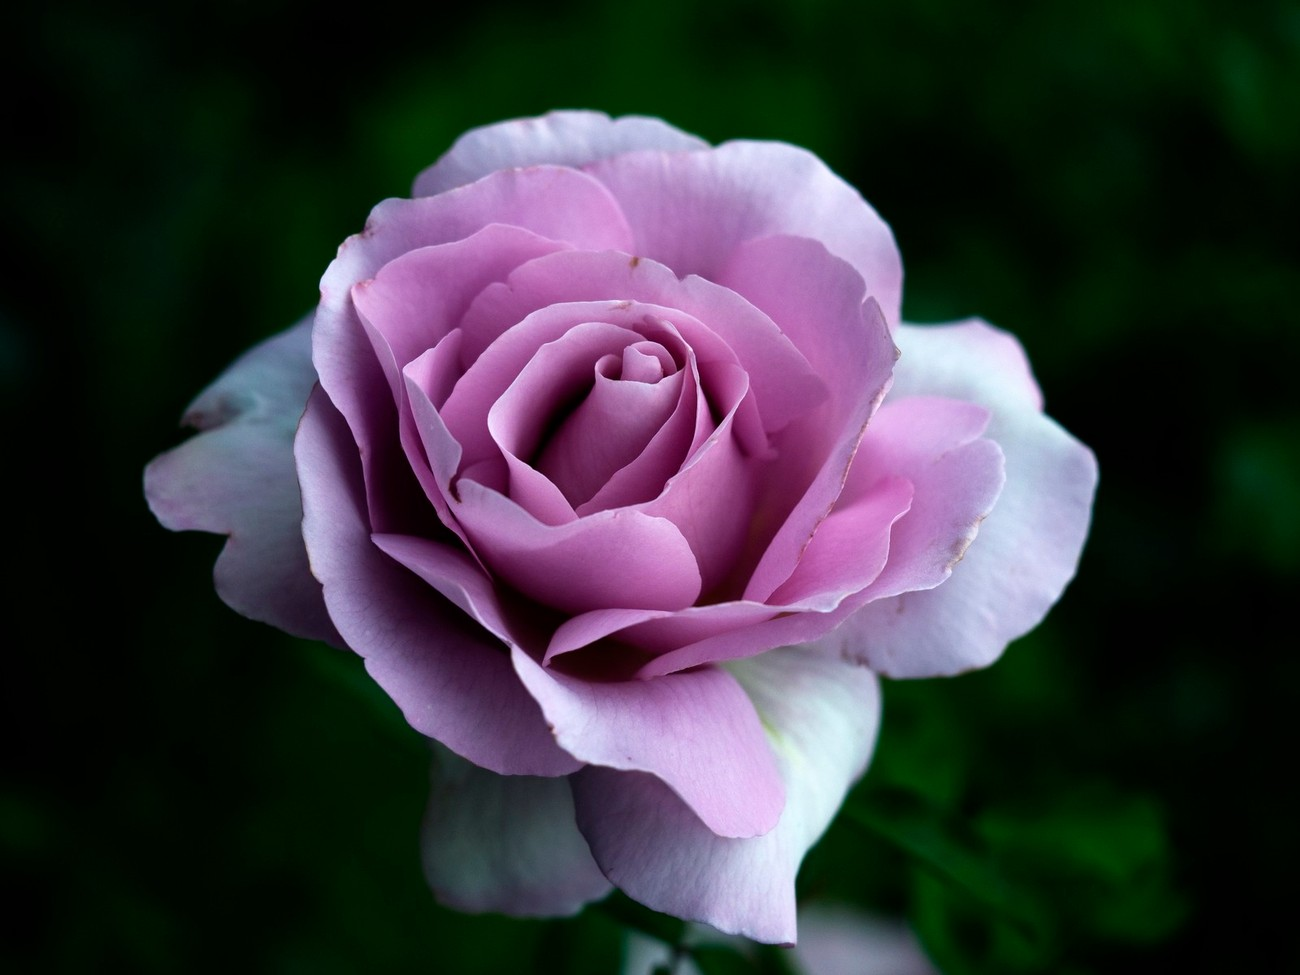 just like the colour and the shape of this rose, this is another one that makes great black and white versions